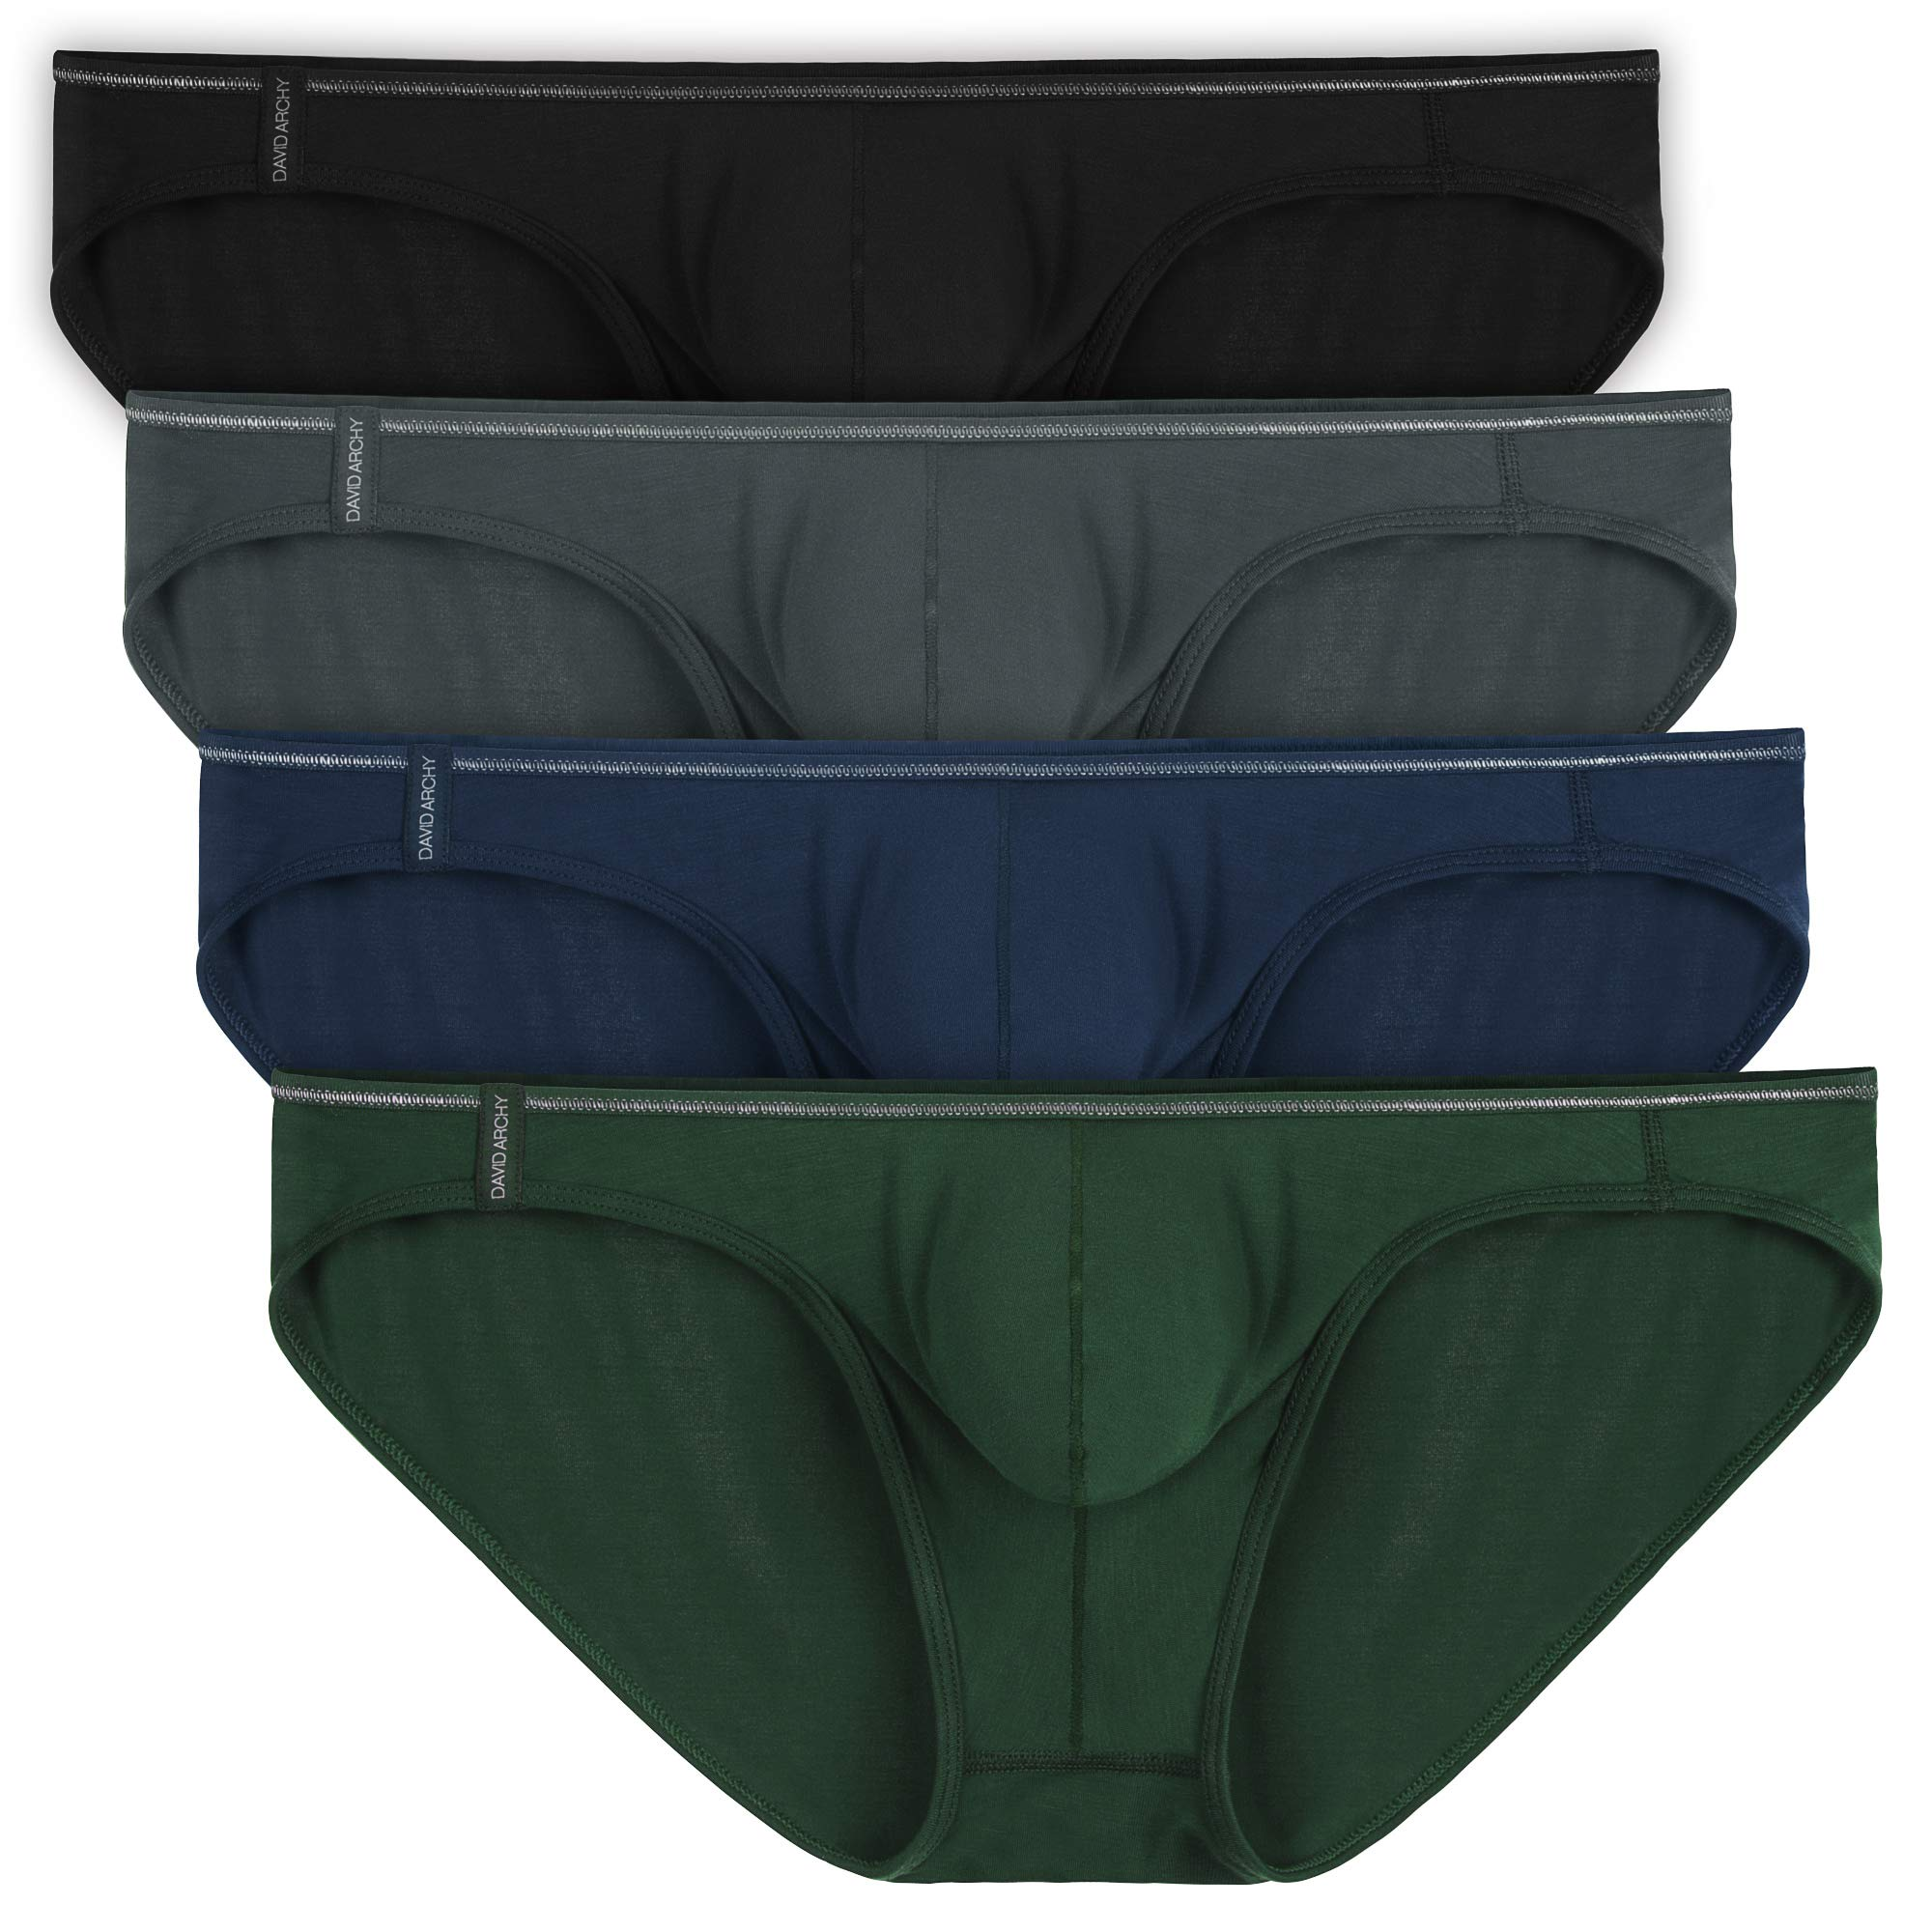 0a8bb73230e5 David Archy Men's 4 Pack Micro Modal Briefs Lightweight Sexy Bikinis  product image